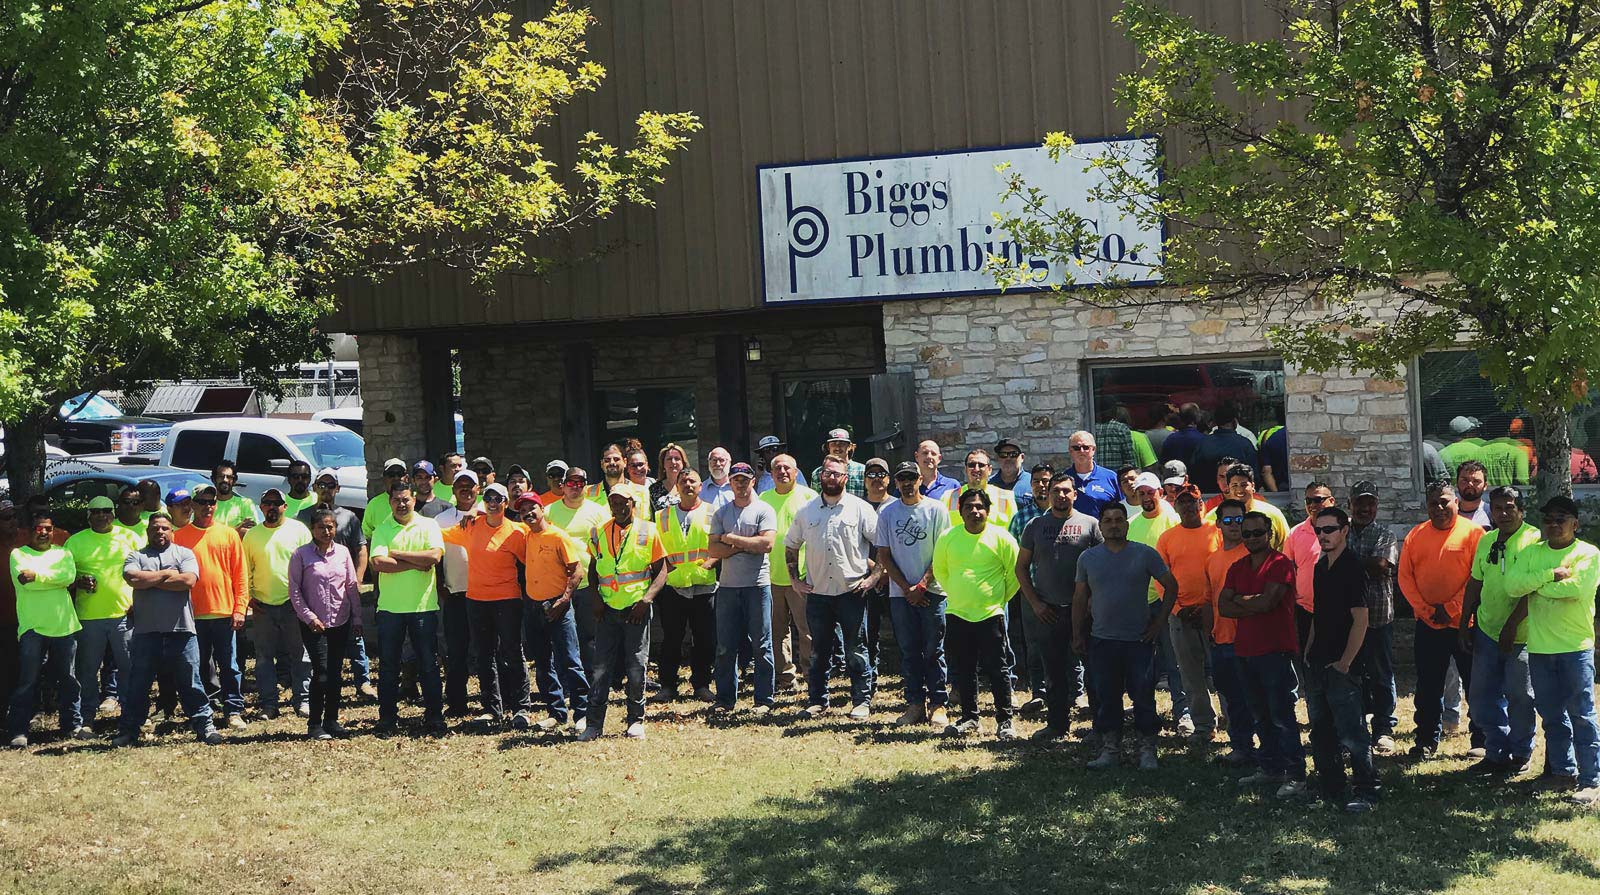 Biggs Plumbing Company - Family Photo